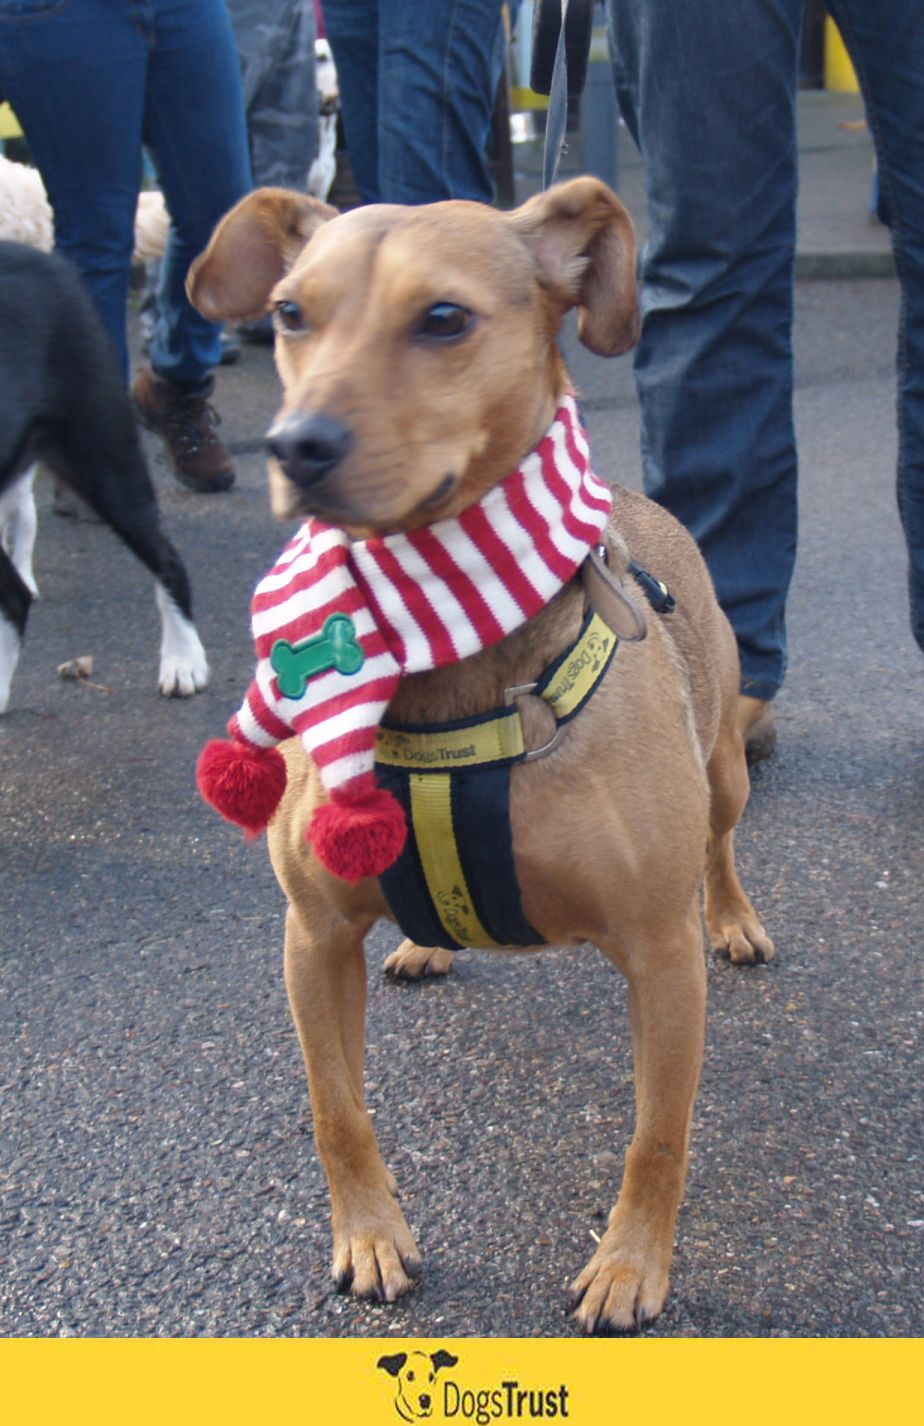 Guiltfree Xmas indulgence? Yes please! Join us at Dogs